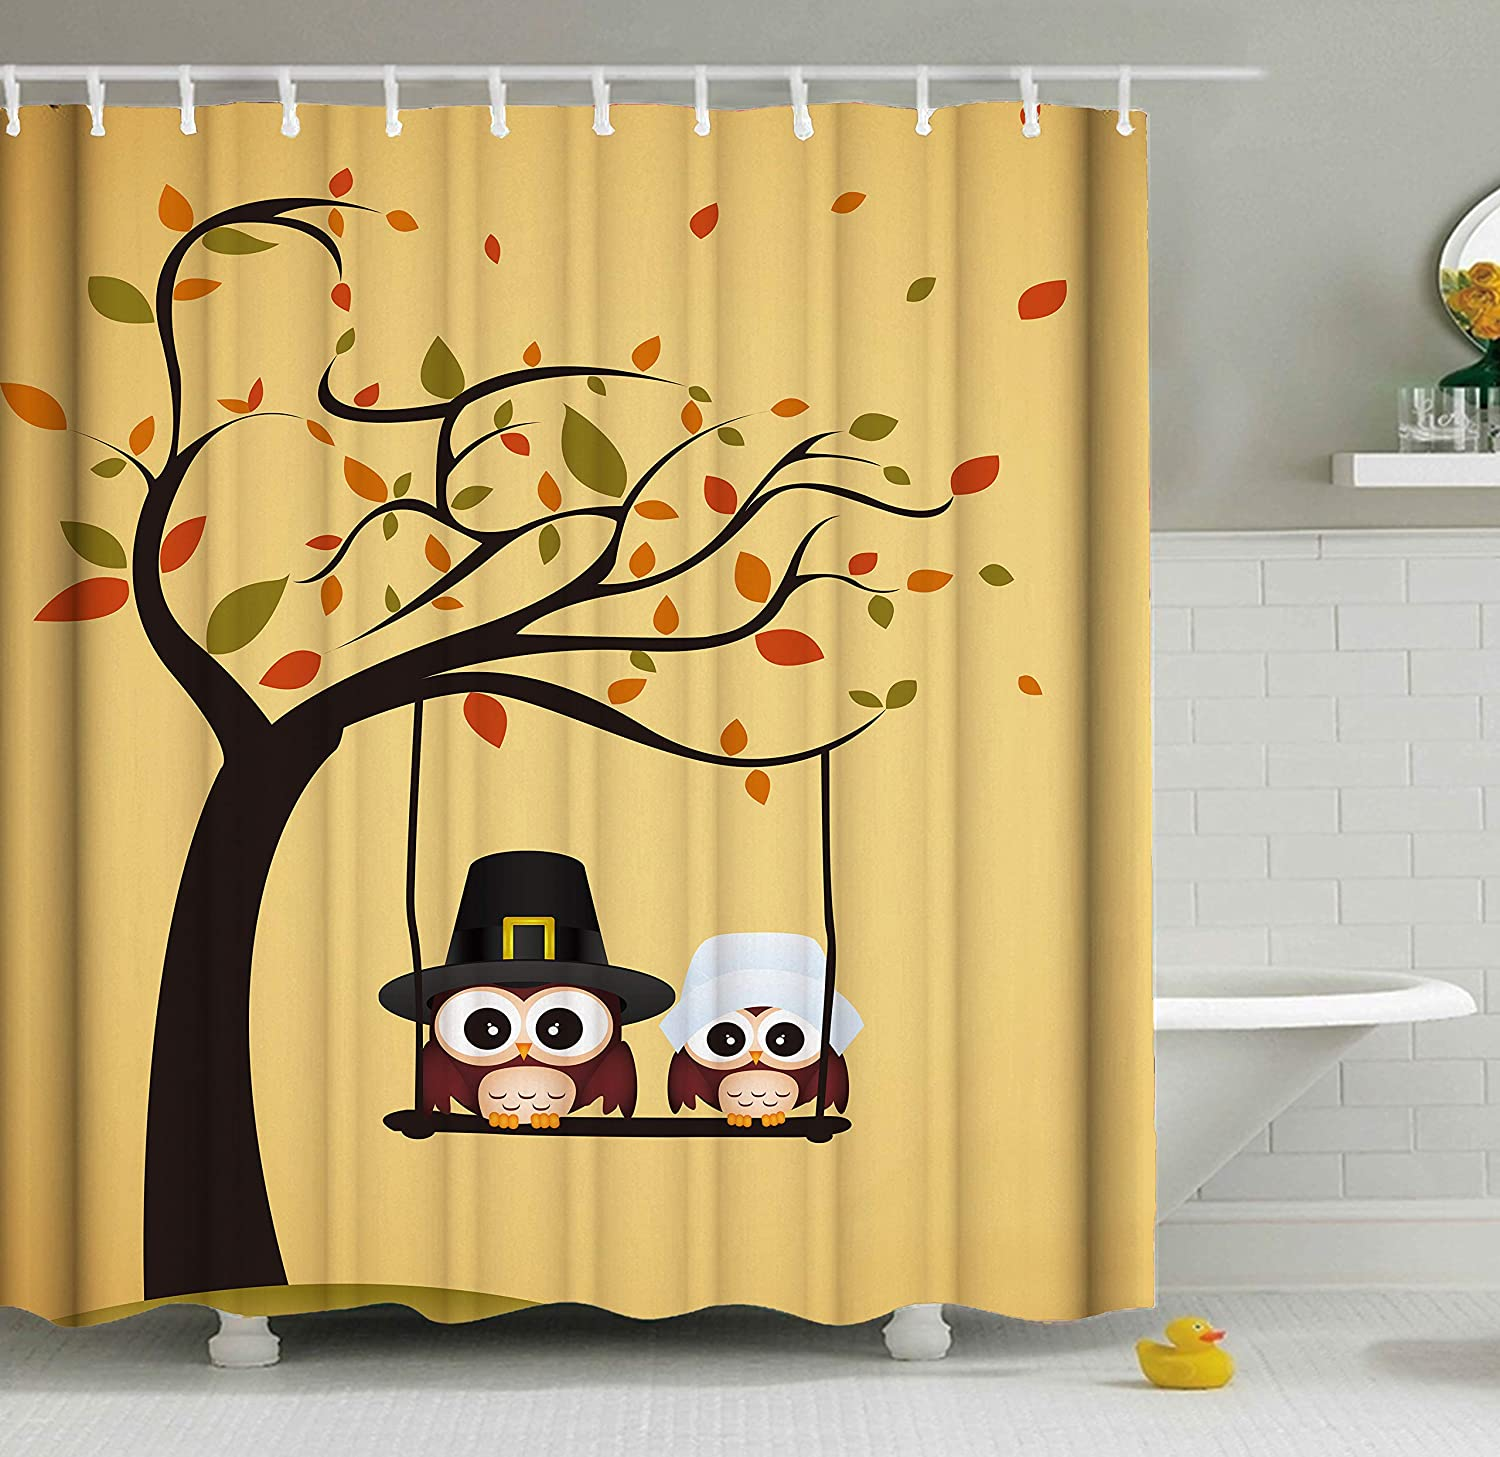 Amazon Com Shinesnow Funny Lovely Cute Owl Tree Yellow Swing Thanksgiving Shower Curtain Set 60 X 72 Inches Home Decor Bathroom Accessories Waterproof Polyester Fabric Curtains Home Kitchen